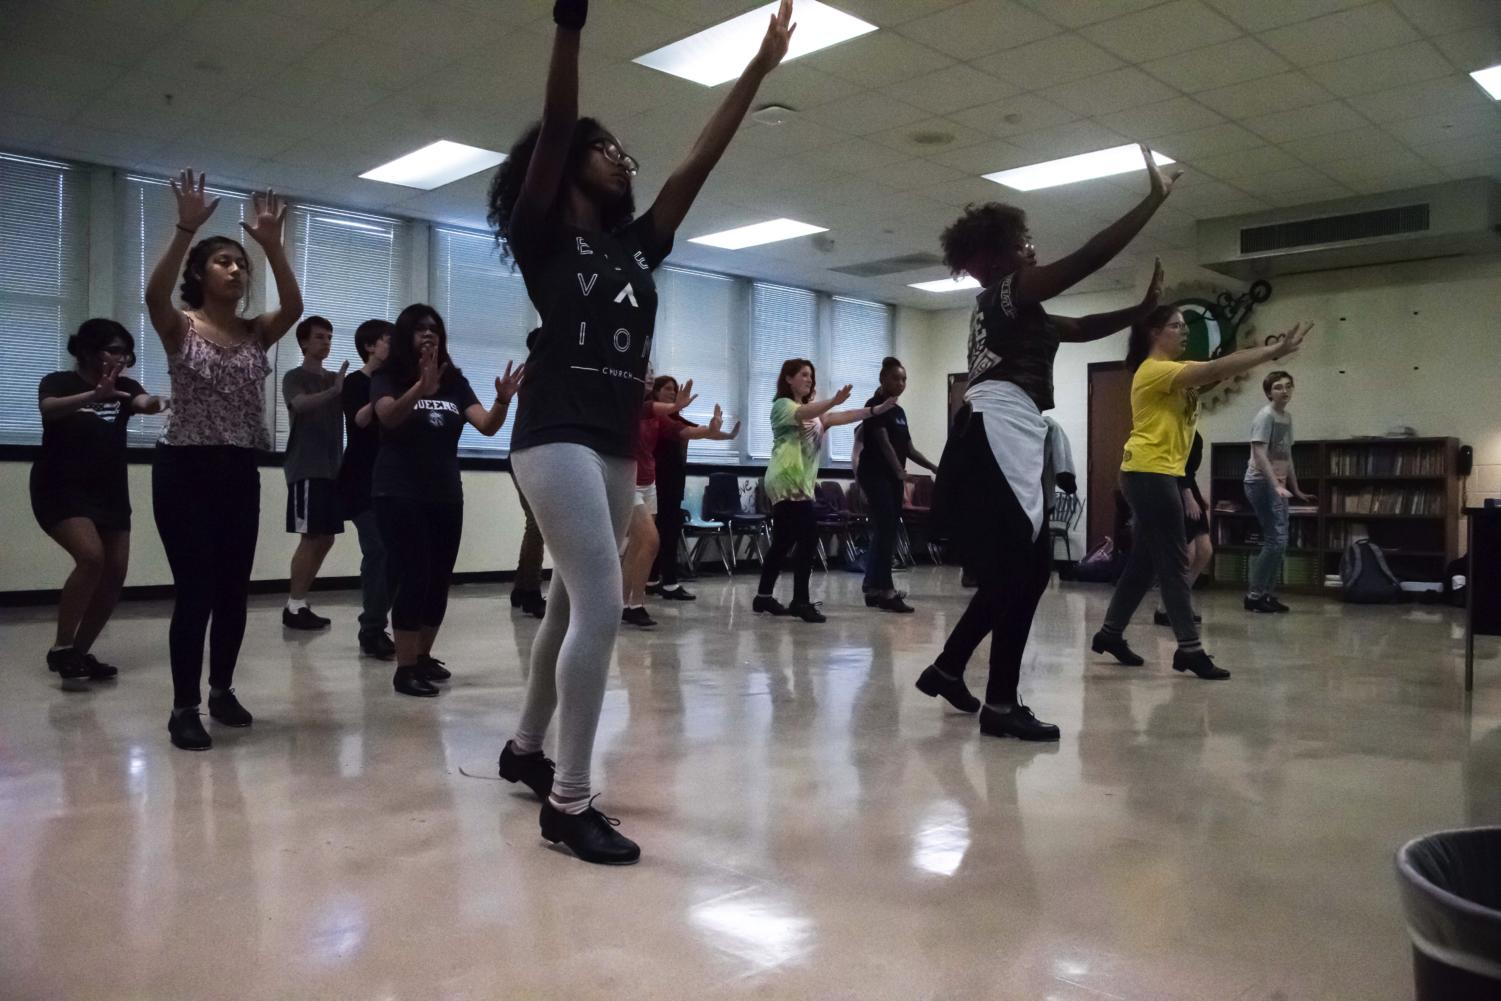 Students take tap dancing classes after school